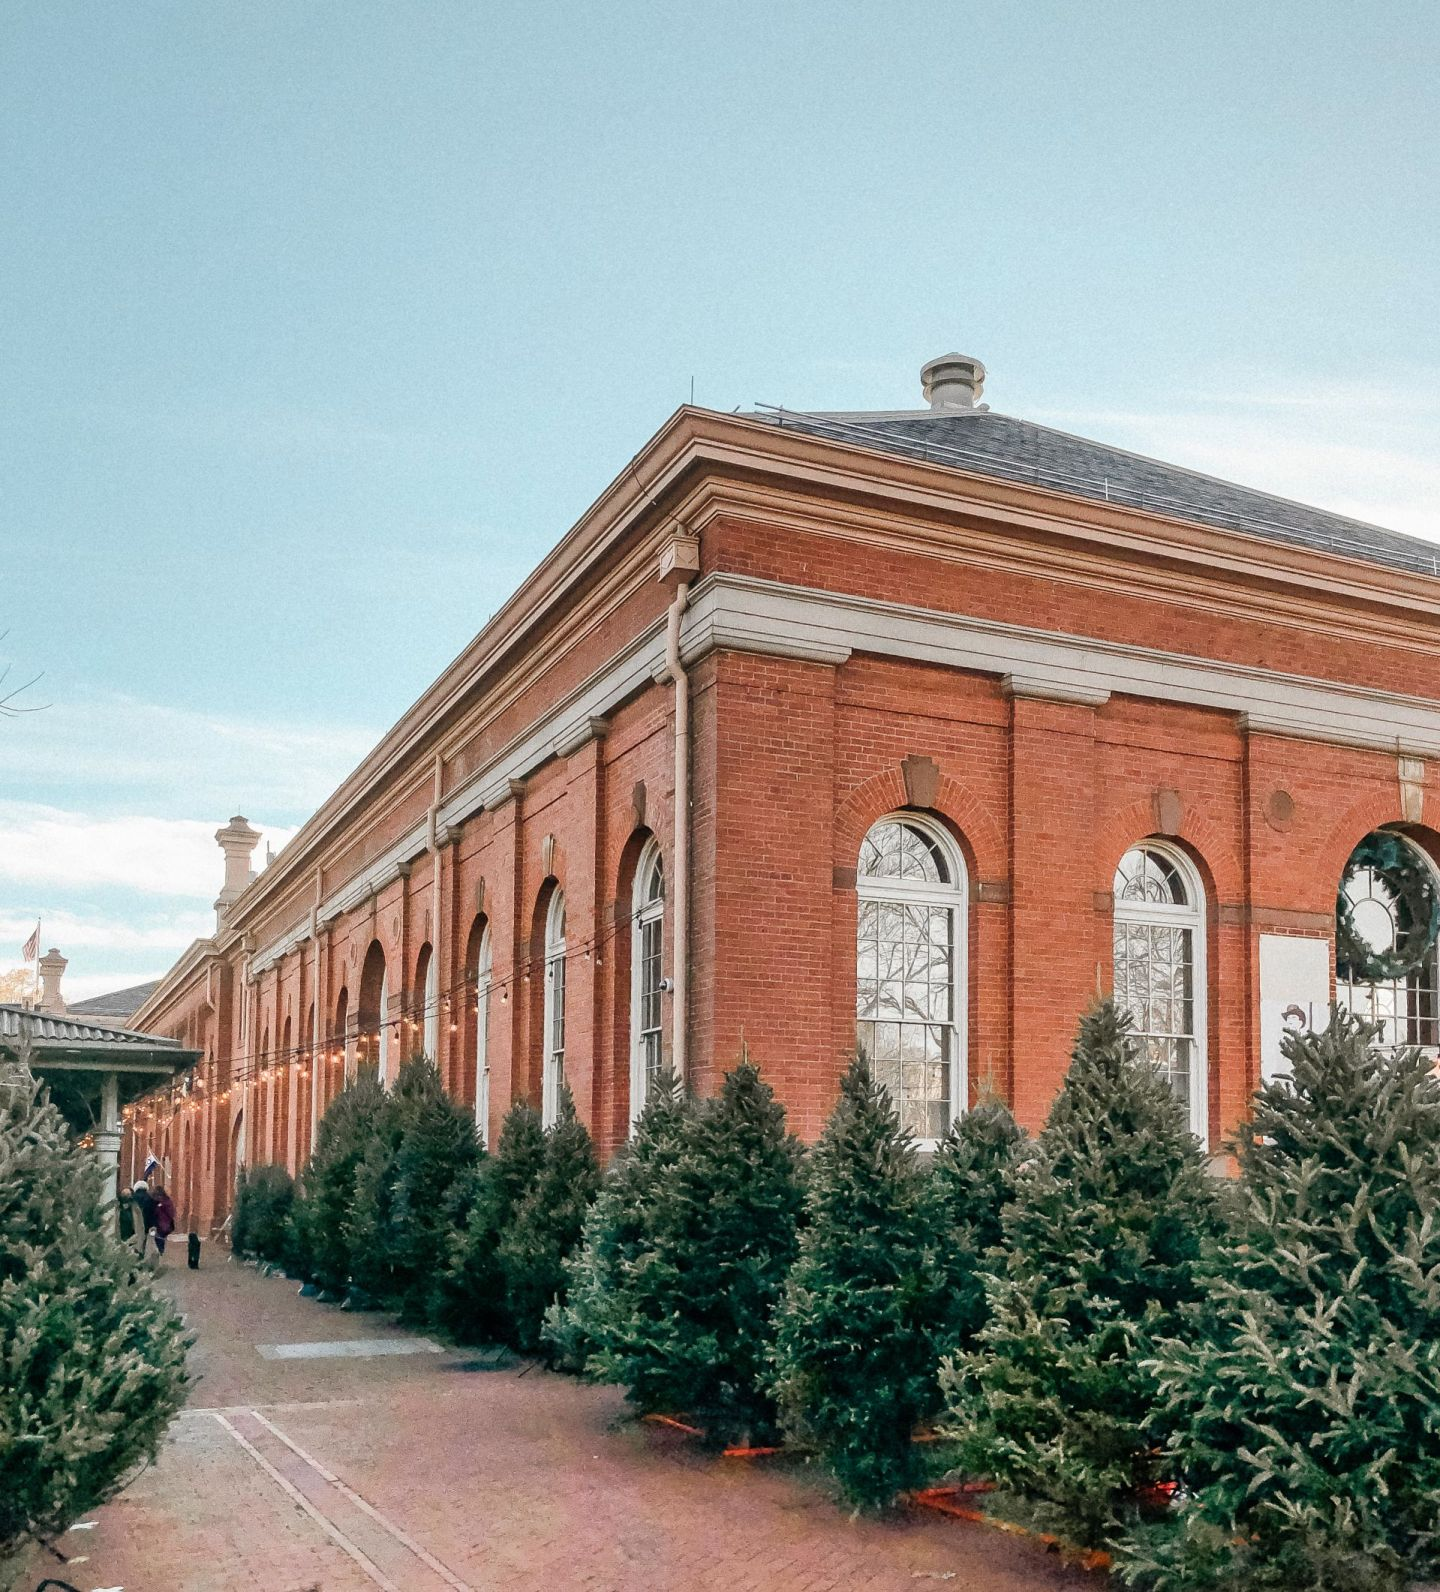 holiday markets in dc - christmas markets in dc - holiday market in dc - christmas market in dc - 2020 holiday markets in dc